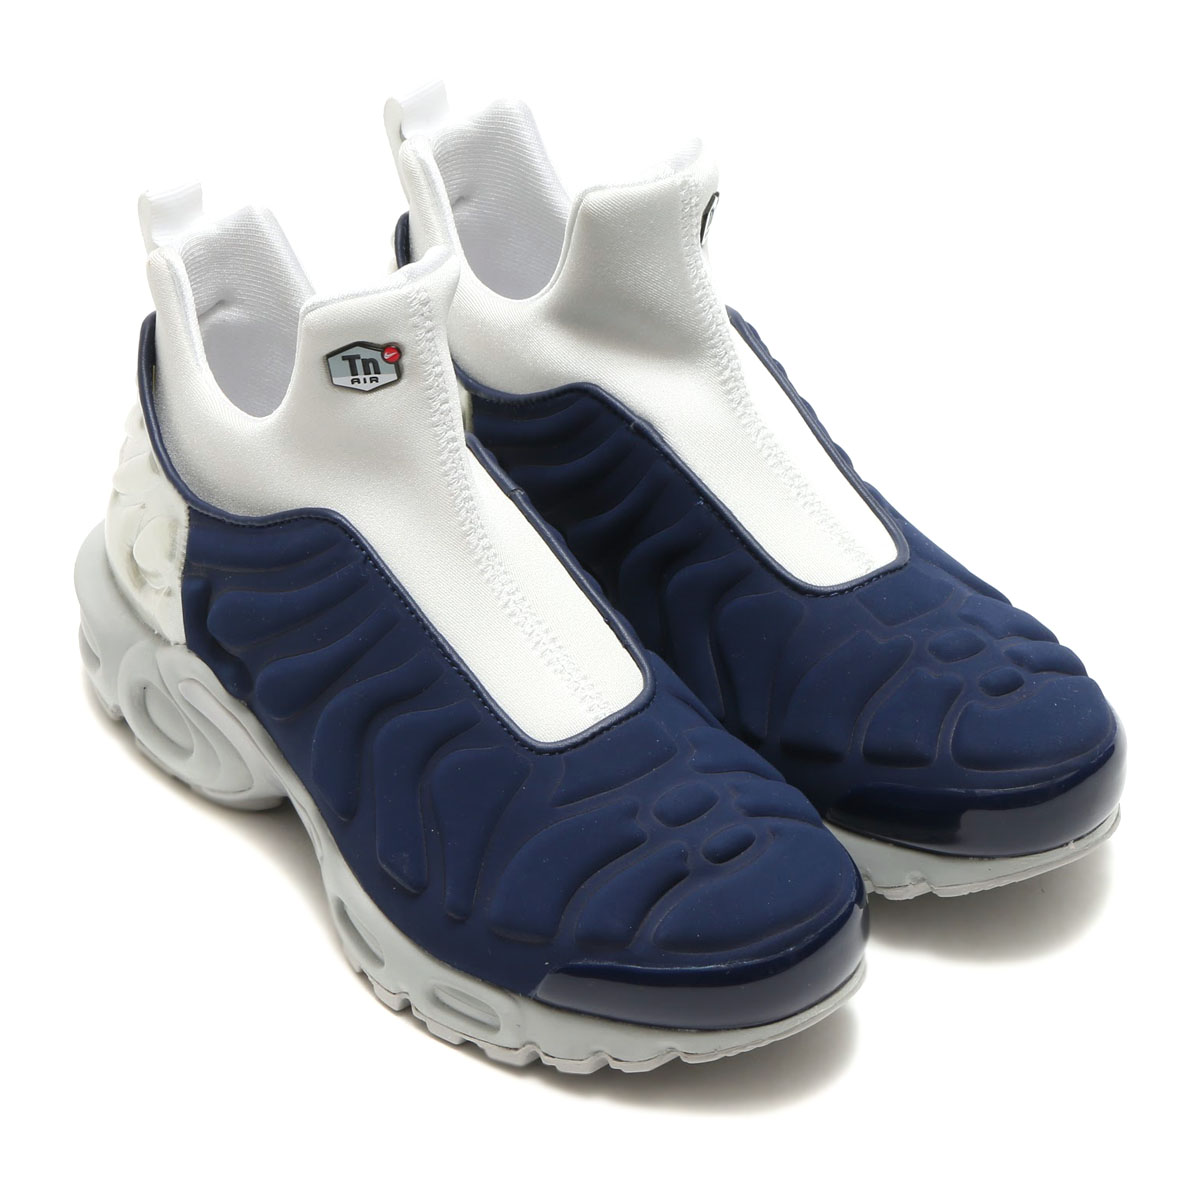 One pair that arranged AIR MAX PLUS of the birth into slip-ons type in 1998. 8cba3529f